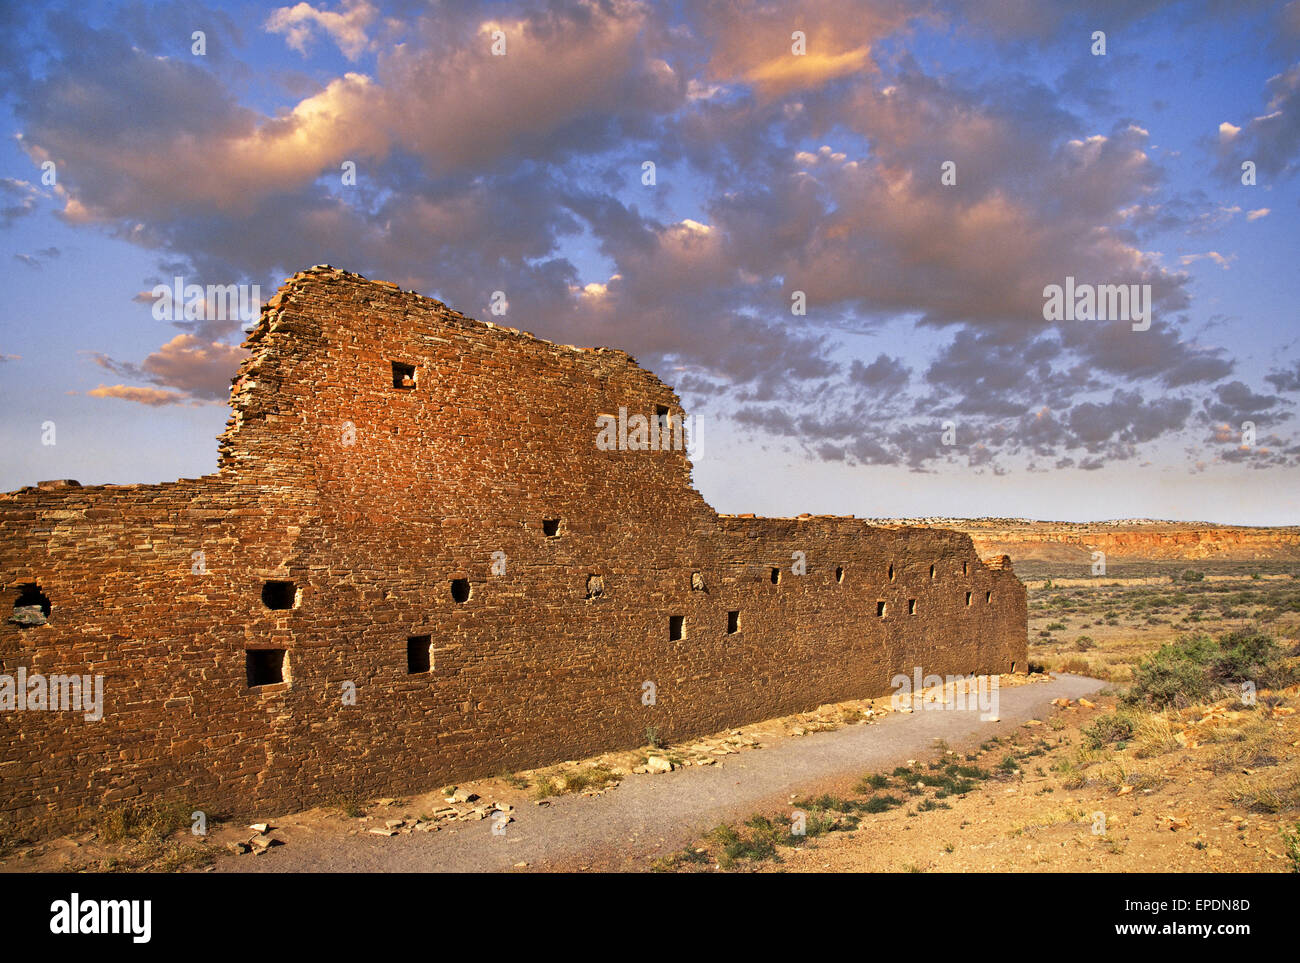 The Anasazi 'Great House' at Hungo Pavi, in Chaco Culture National Historical Park, in northwestern New - Stock Image